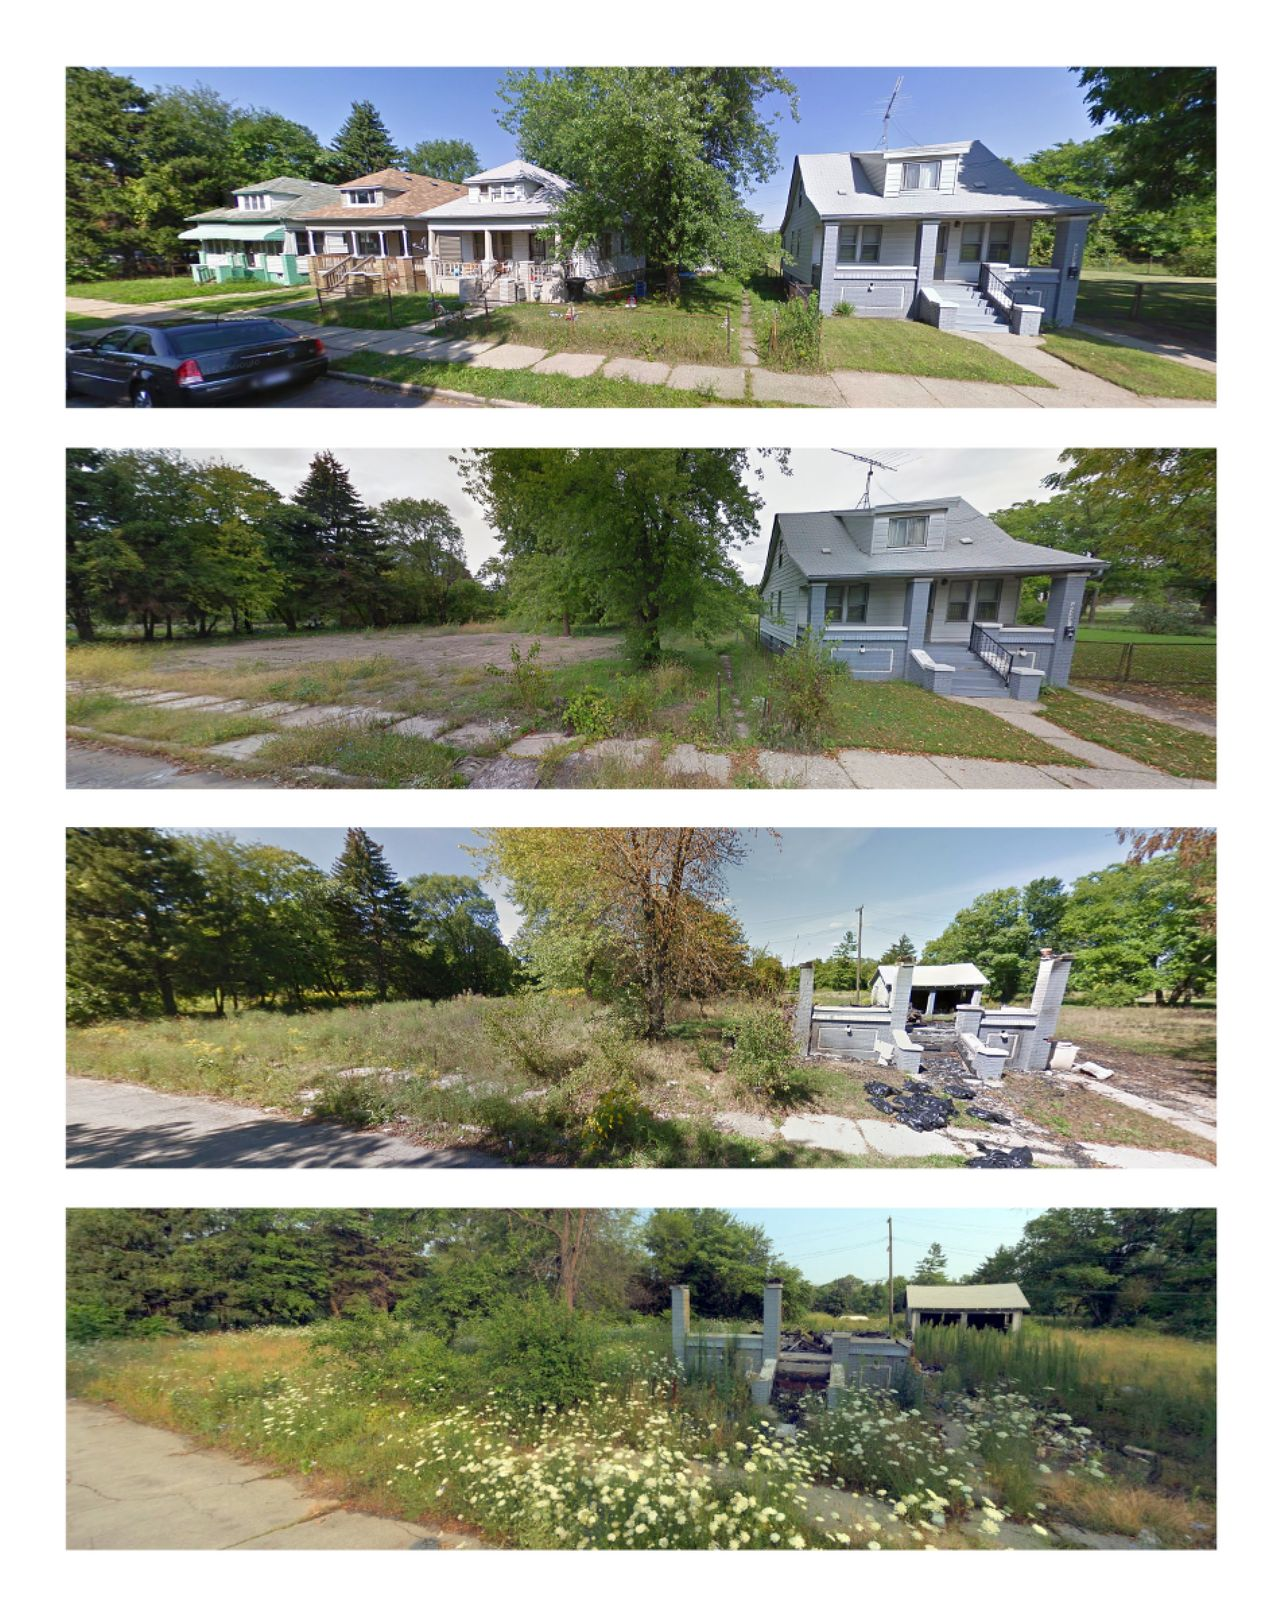 Montlieu Street is shown in September 2009, September 2011, September 2013 and August 2014 images from Google and Bing.